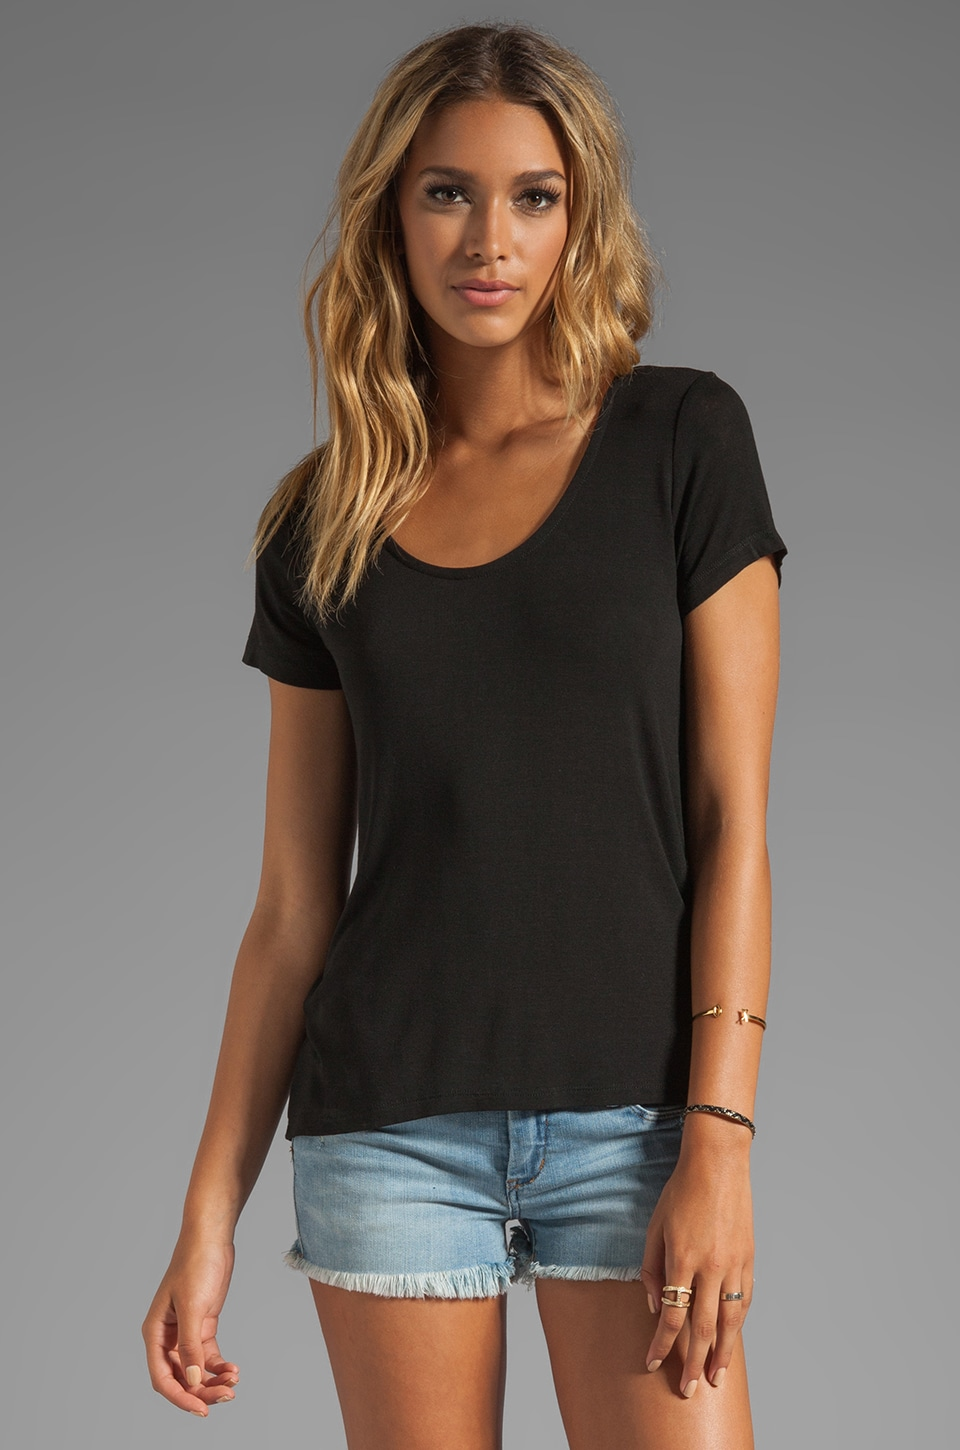 Splendid Lux Jersey Basic Tee in Black